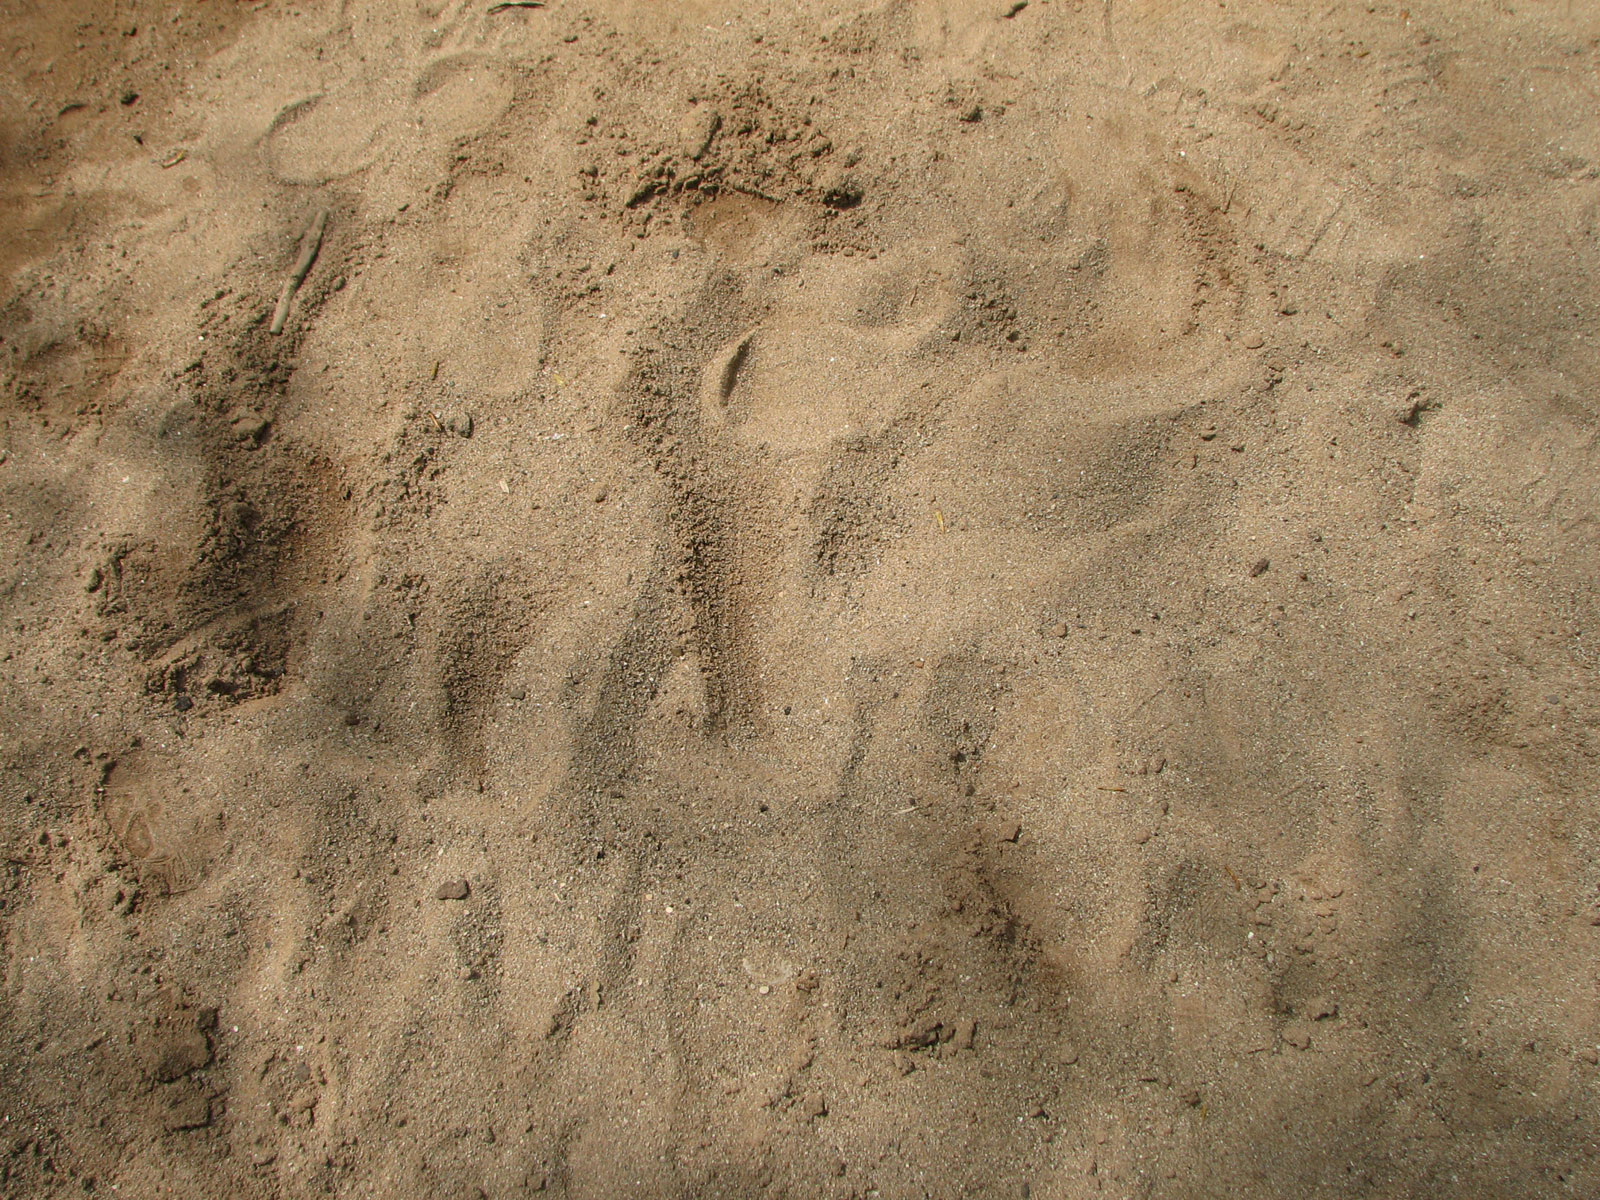 Sand-tracks-02 by